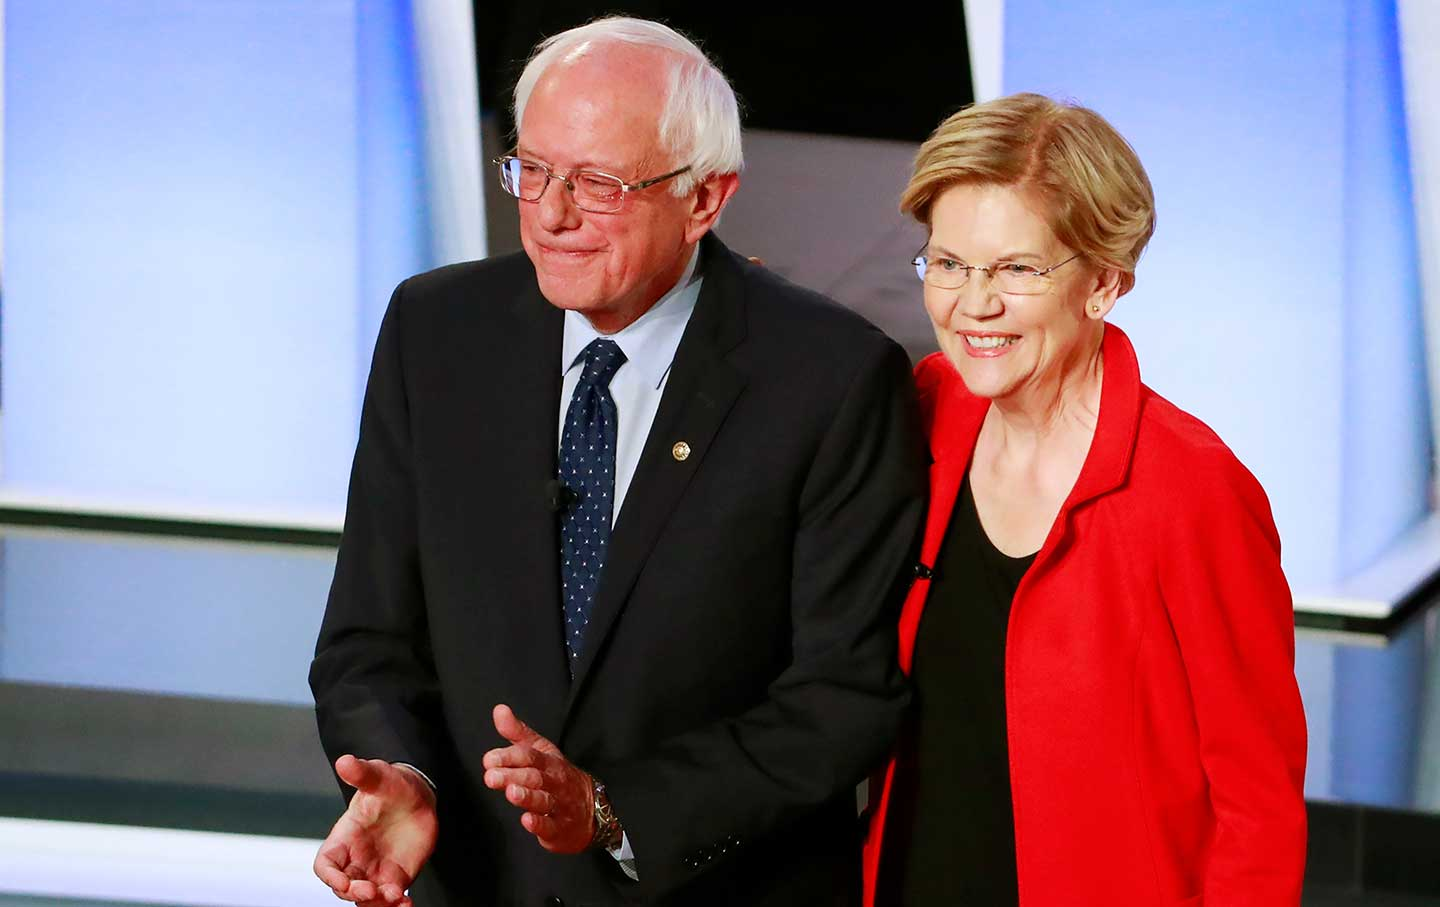 Regulation vs. Revolution: The Ground Between Sanders and Warren